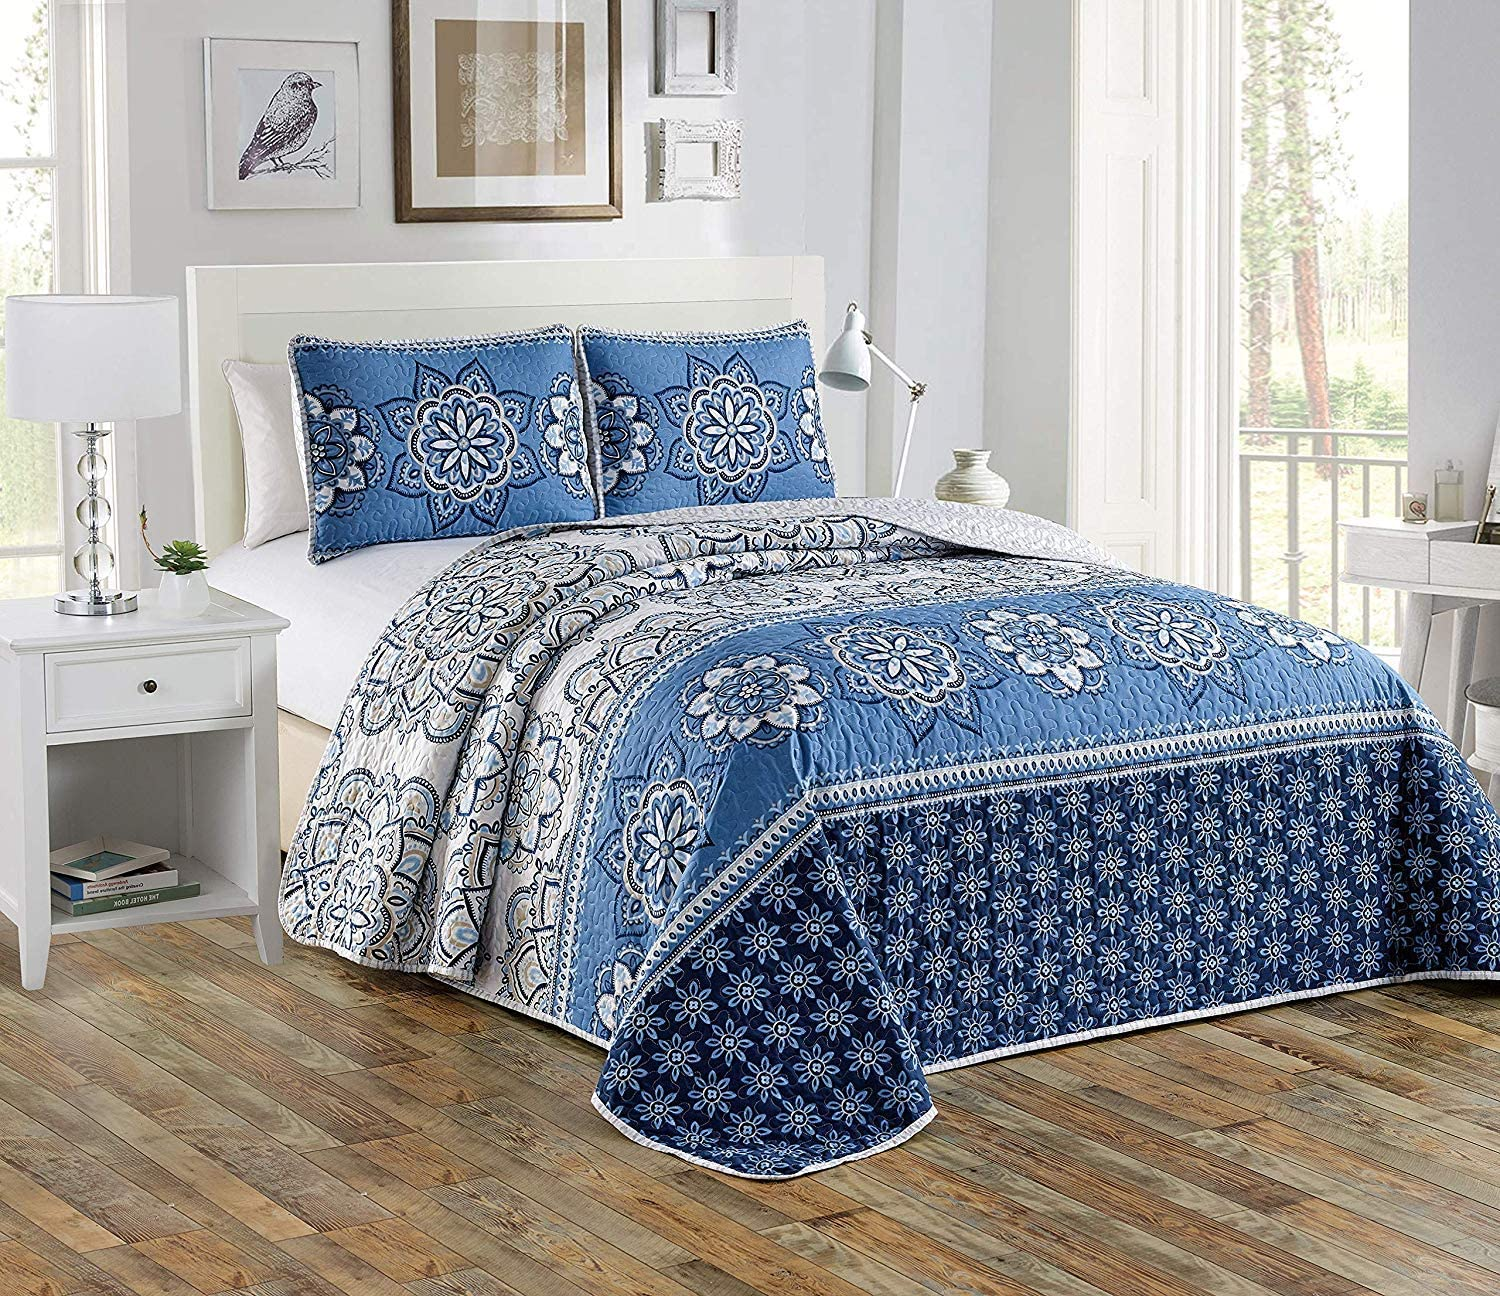 Luxury Home Collection 2 El Free shipping anywhere in the nation Paso Mall Piece XL Twin Oversize Rev Quilted